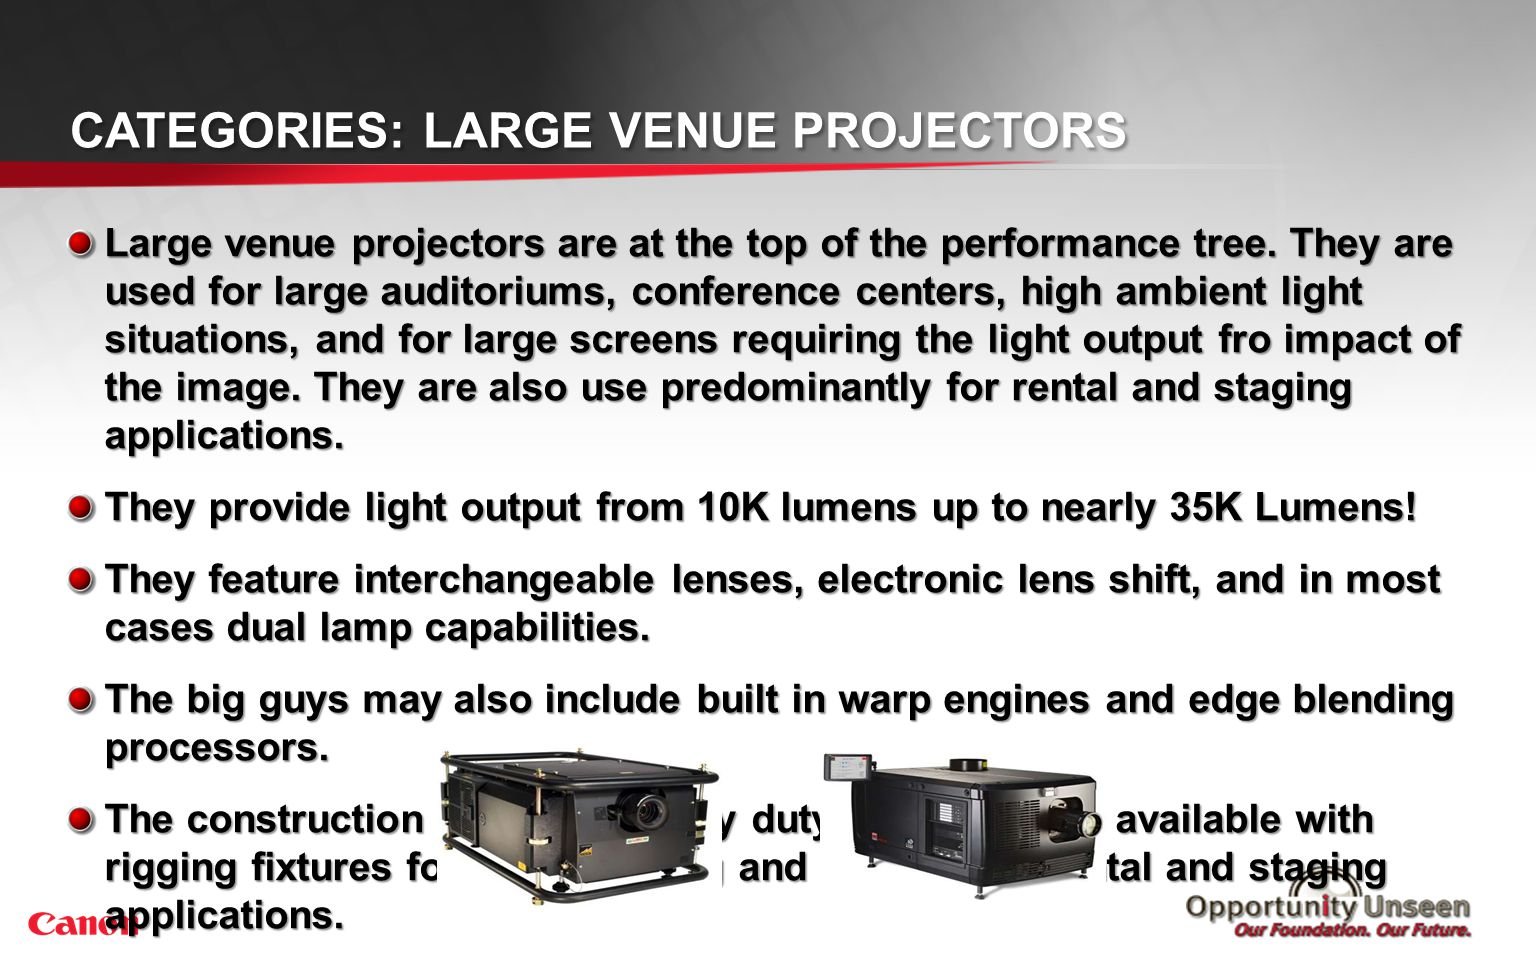 CATEGORIES: LARGE VENUE PROJECTORS Large venue projectors are at the top of the performance tree. They are used for large auditoriums, conference cent